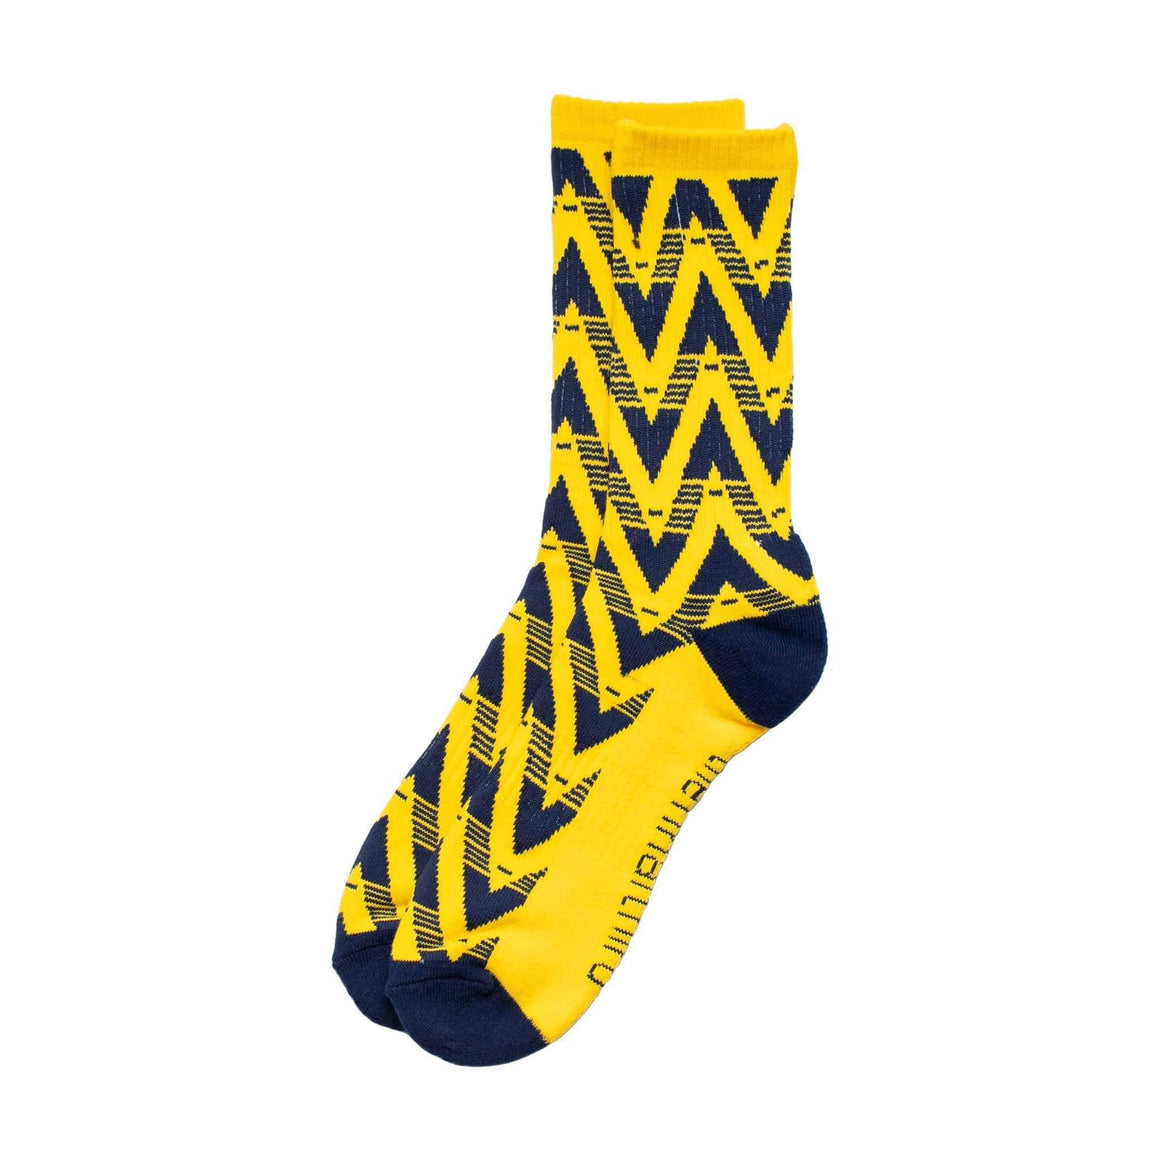 Bruised banana 1991-93 Arsenal socks - The Final Third - Football Shirt Collective